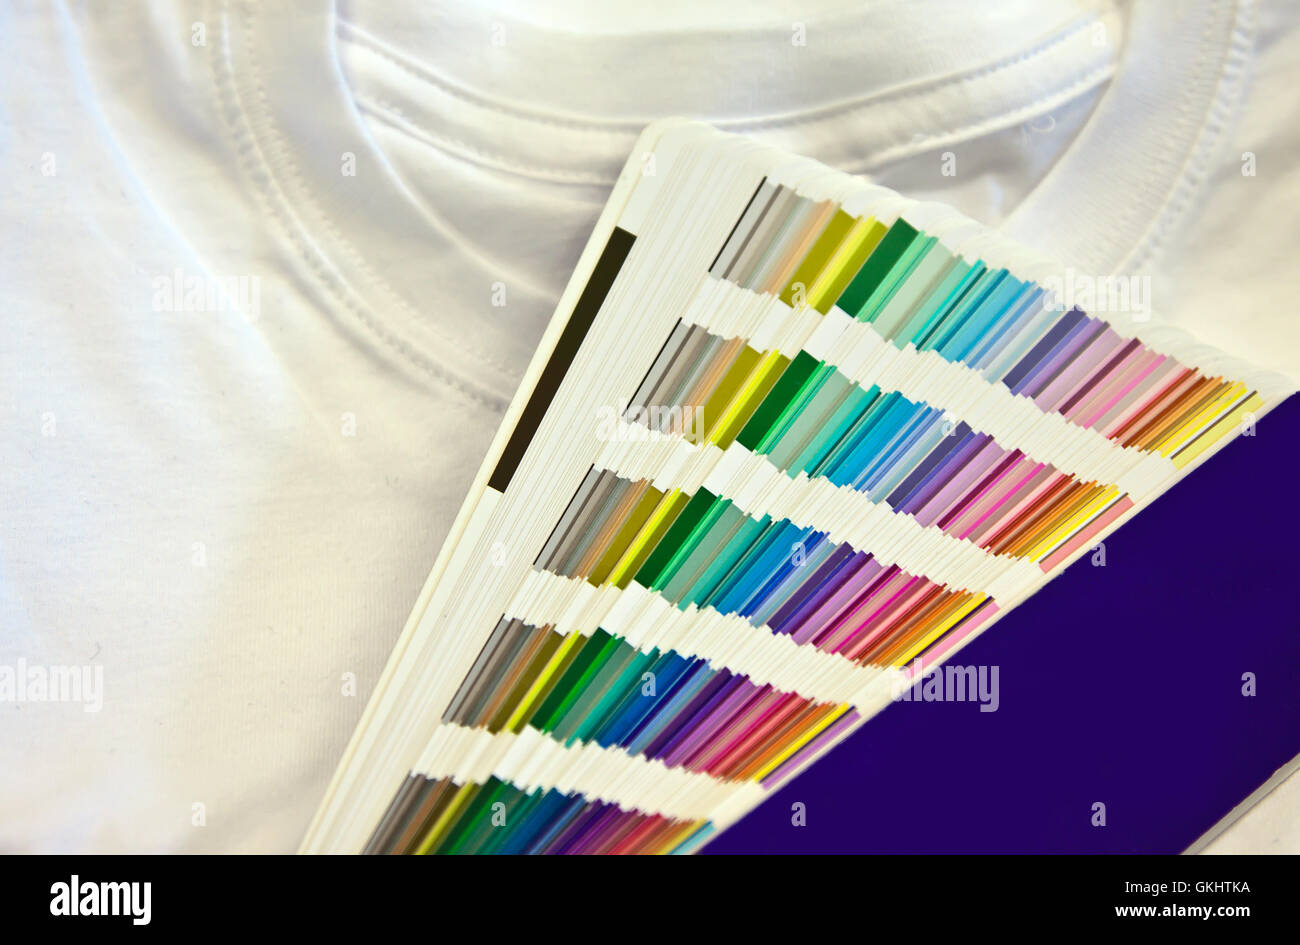 color scale - Stock Image